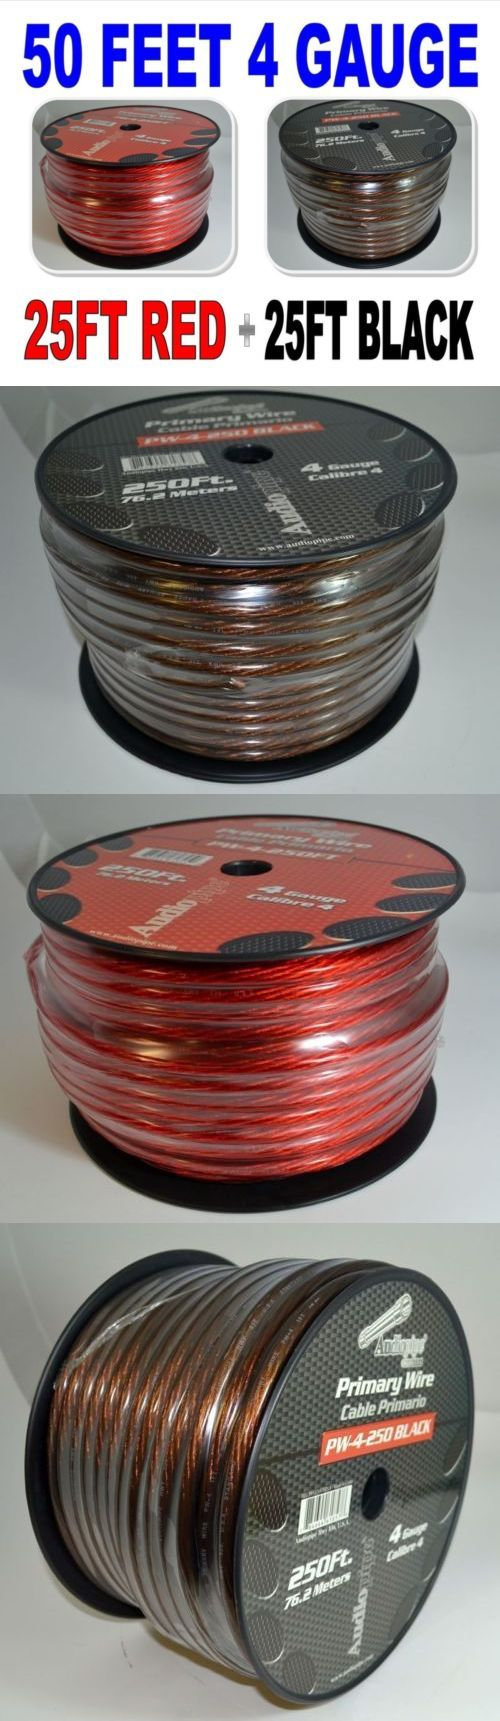 Power and Speaker Wire: 4Ga 25Ft Black 25 Ft Red Wire Cable Power Ground Primary Hand Rolled -> BUY IT NOW ONLY: $34.93 on eBay!